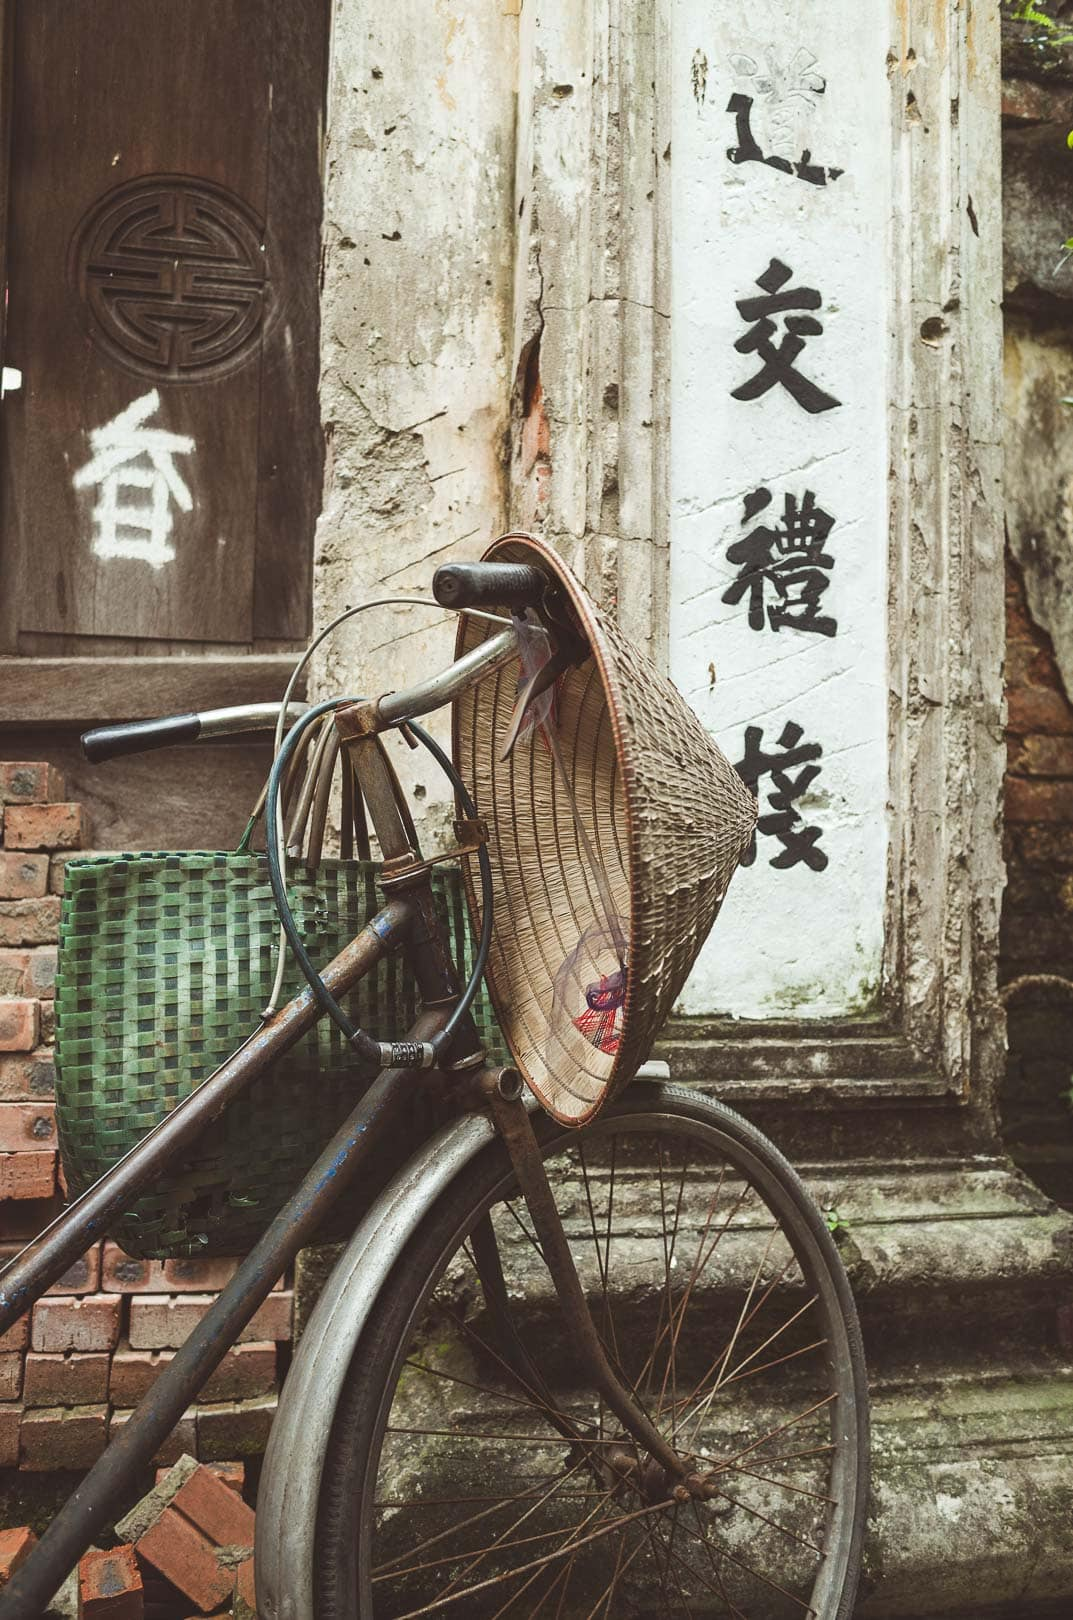 An Asian rice hat sits on a bike in Hanoi, Vietnam